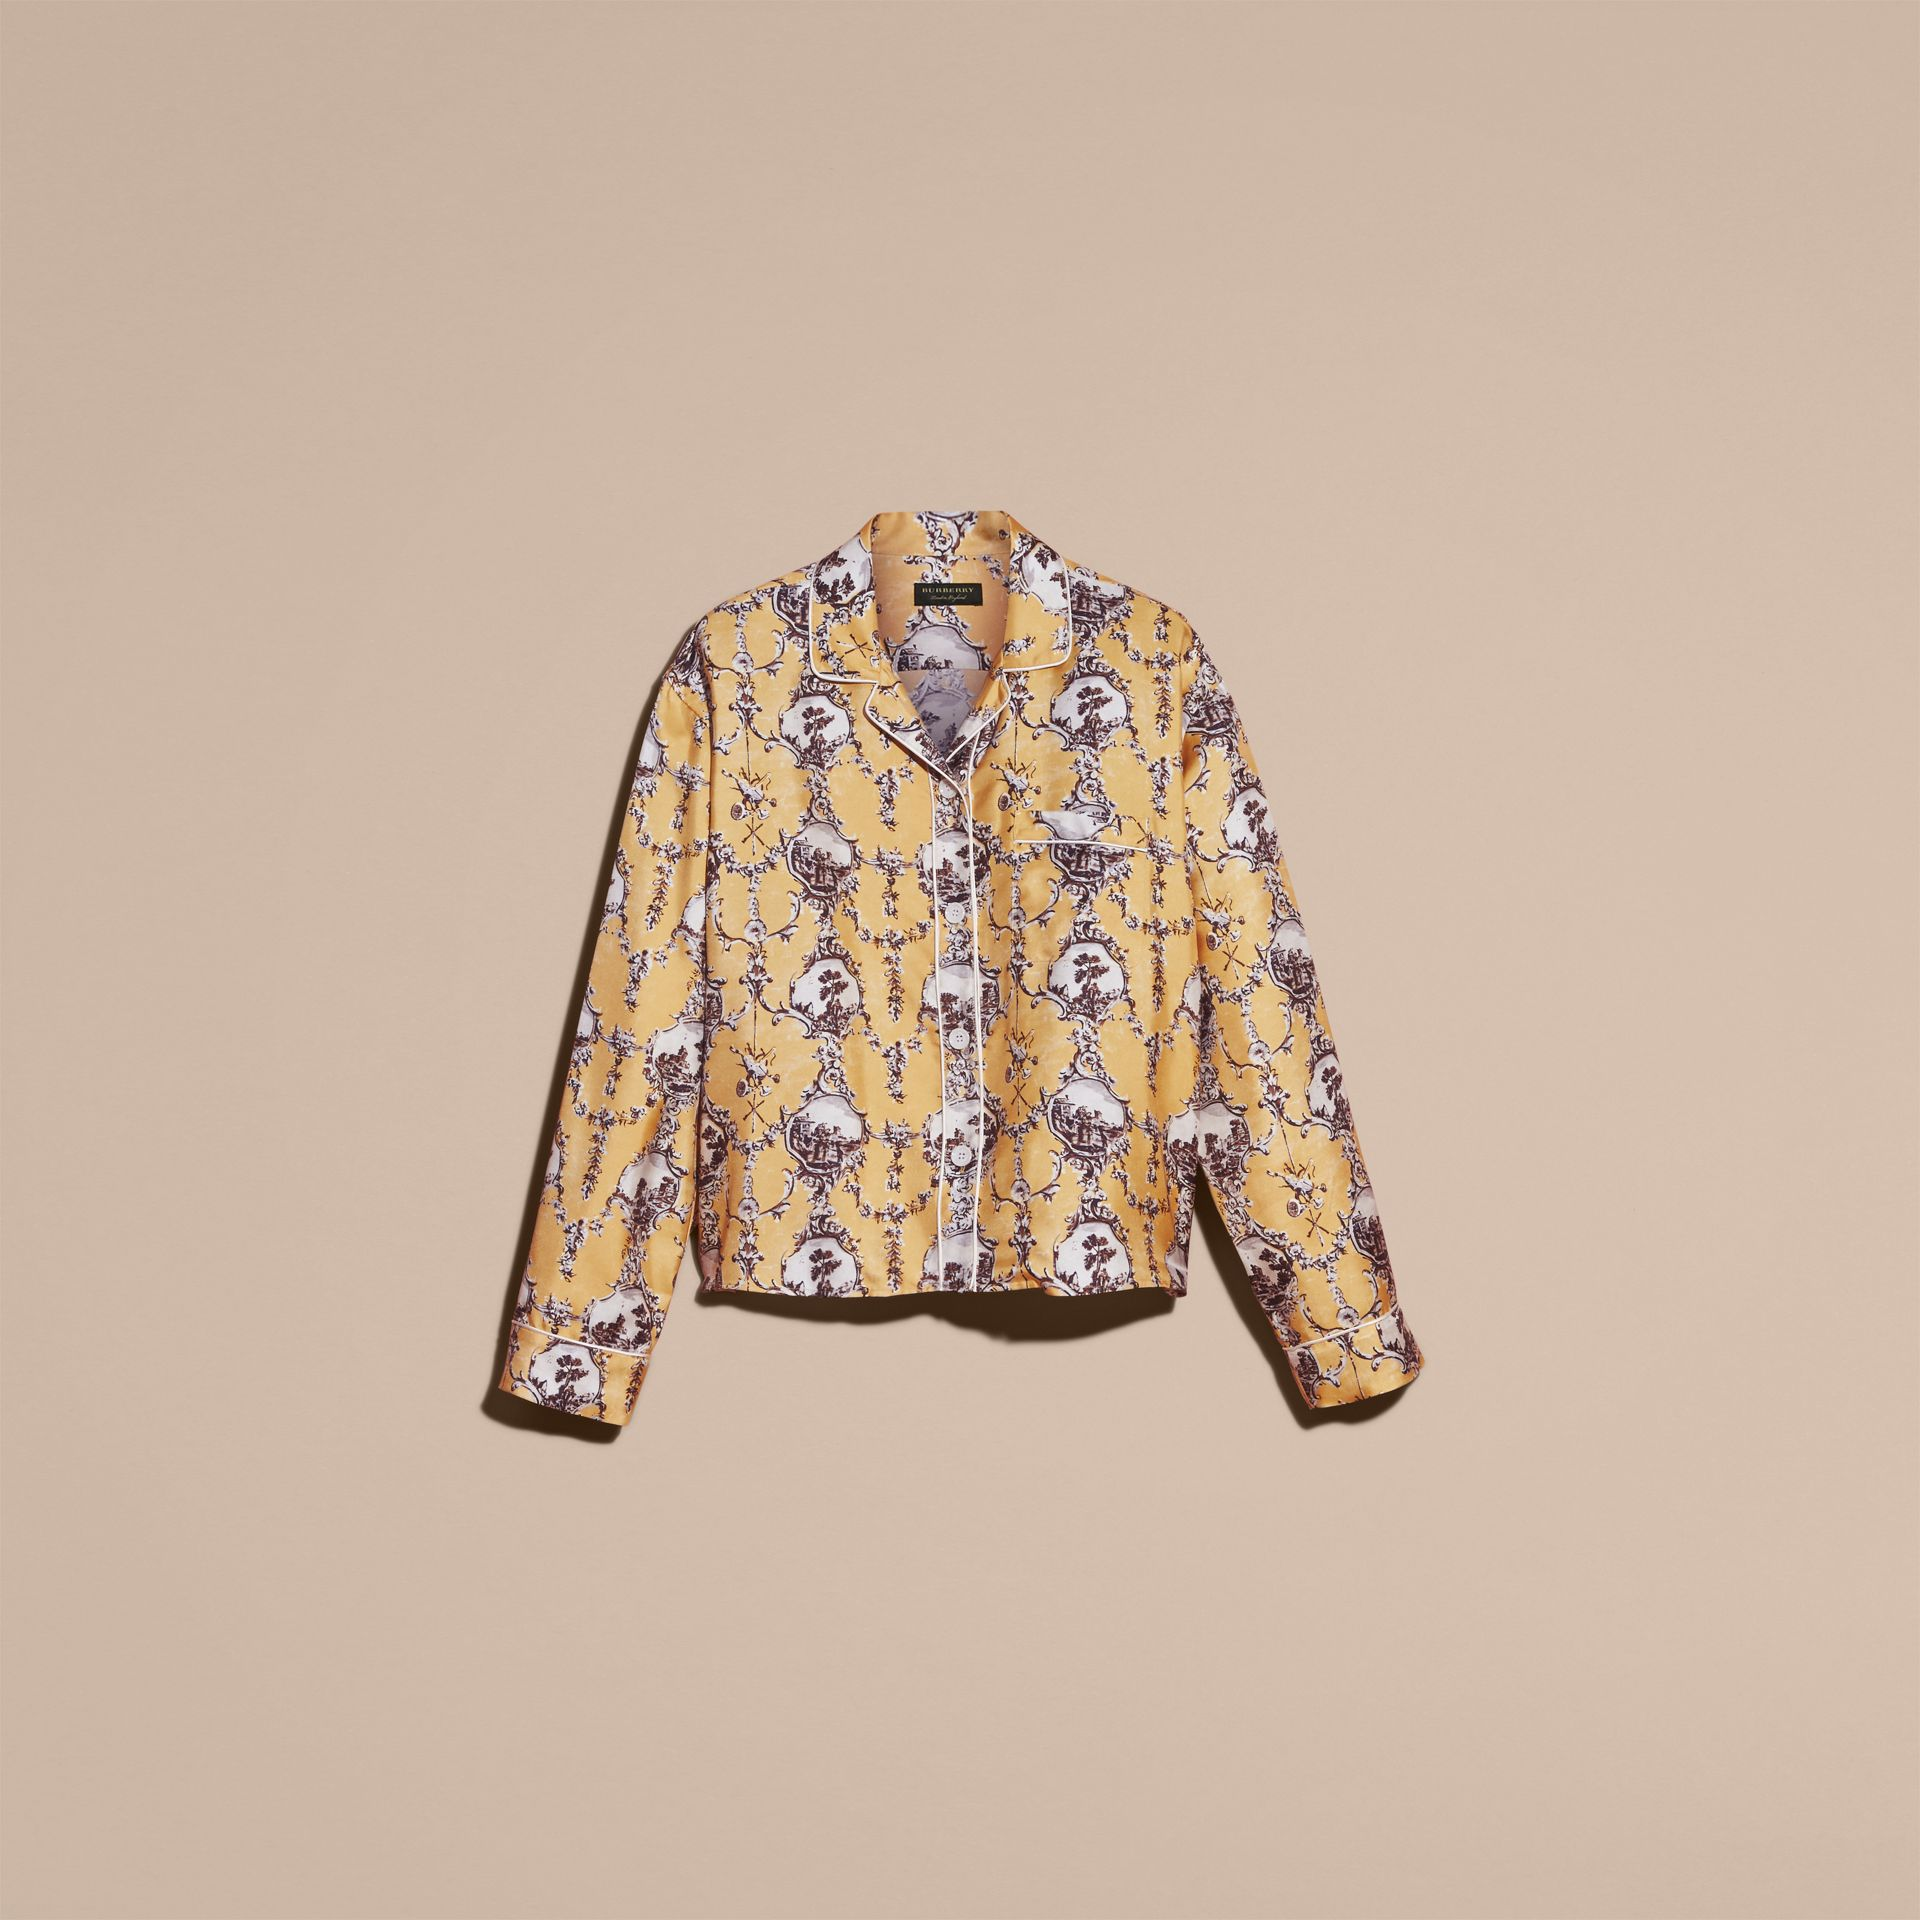 Yellow barley Wallpaper Print Silk Twill Pyjama-style Shirt - gallery image 4